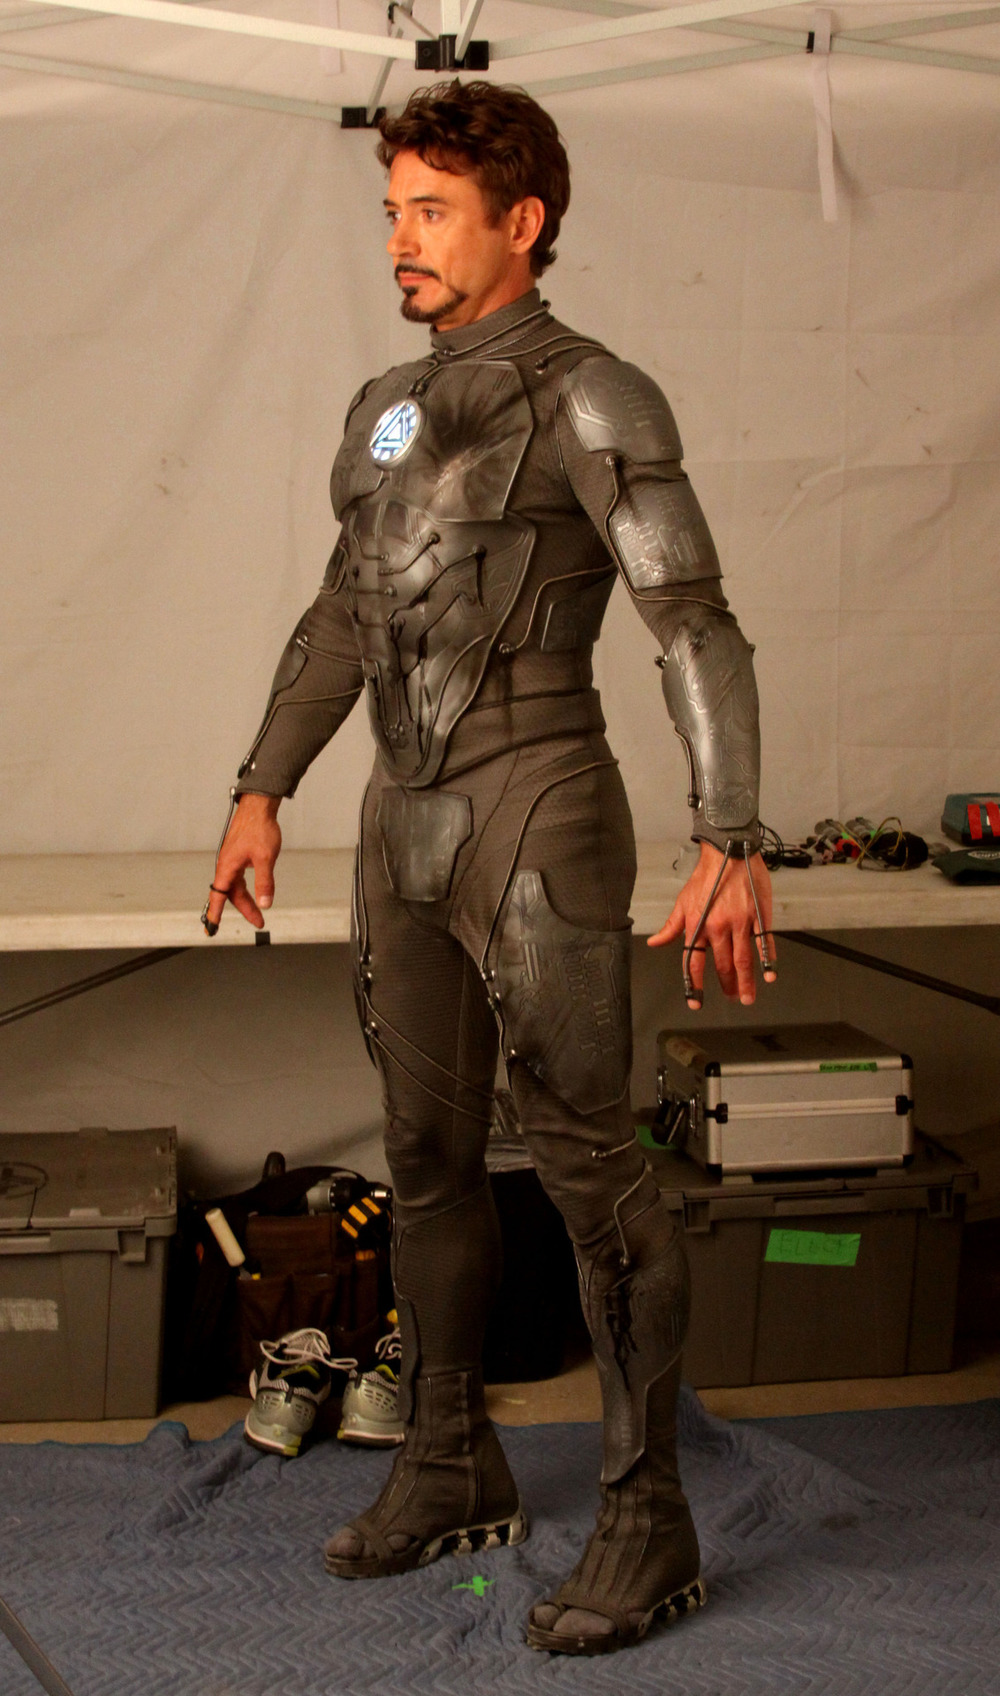 What Armor is Tony Stark Wearing in this Picture? — GeekTyrant